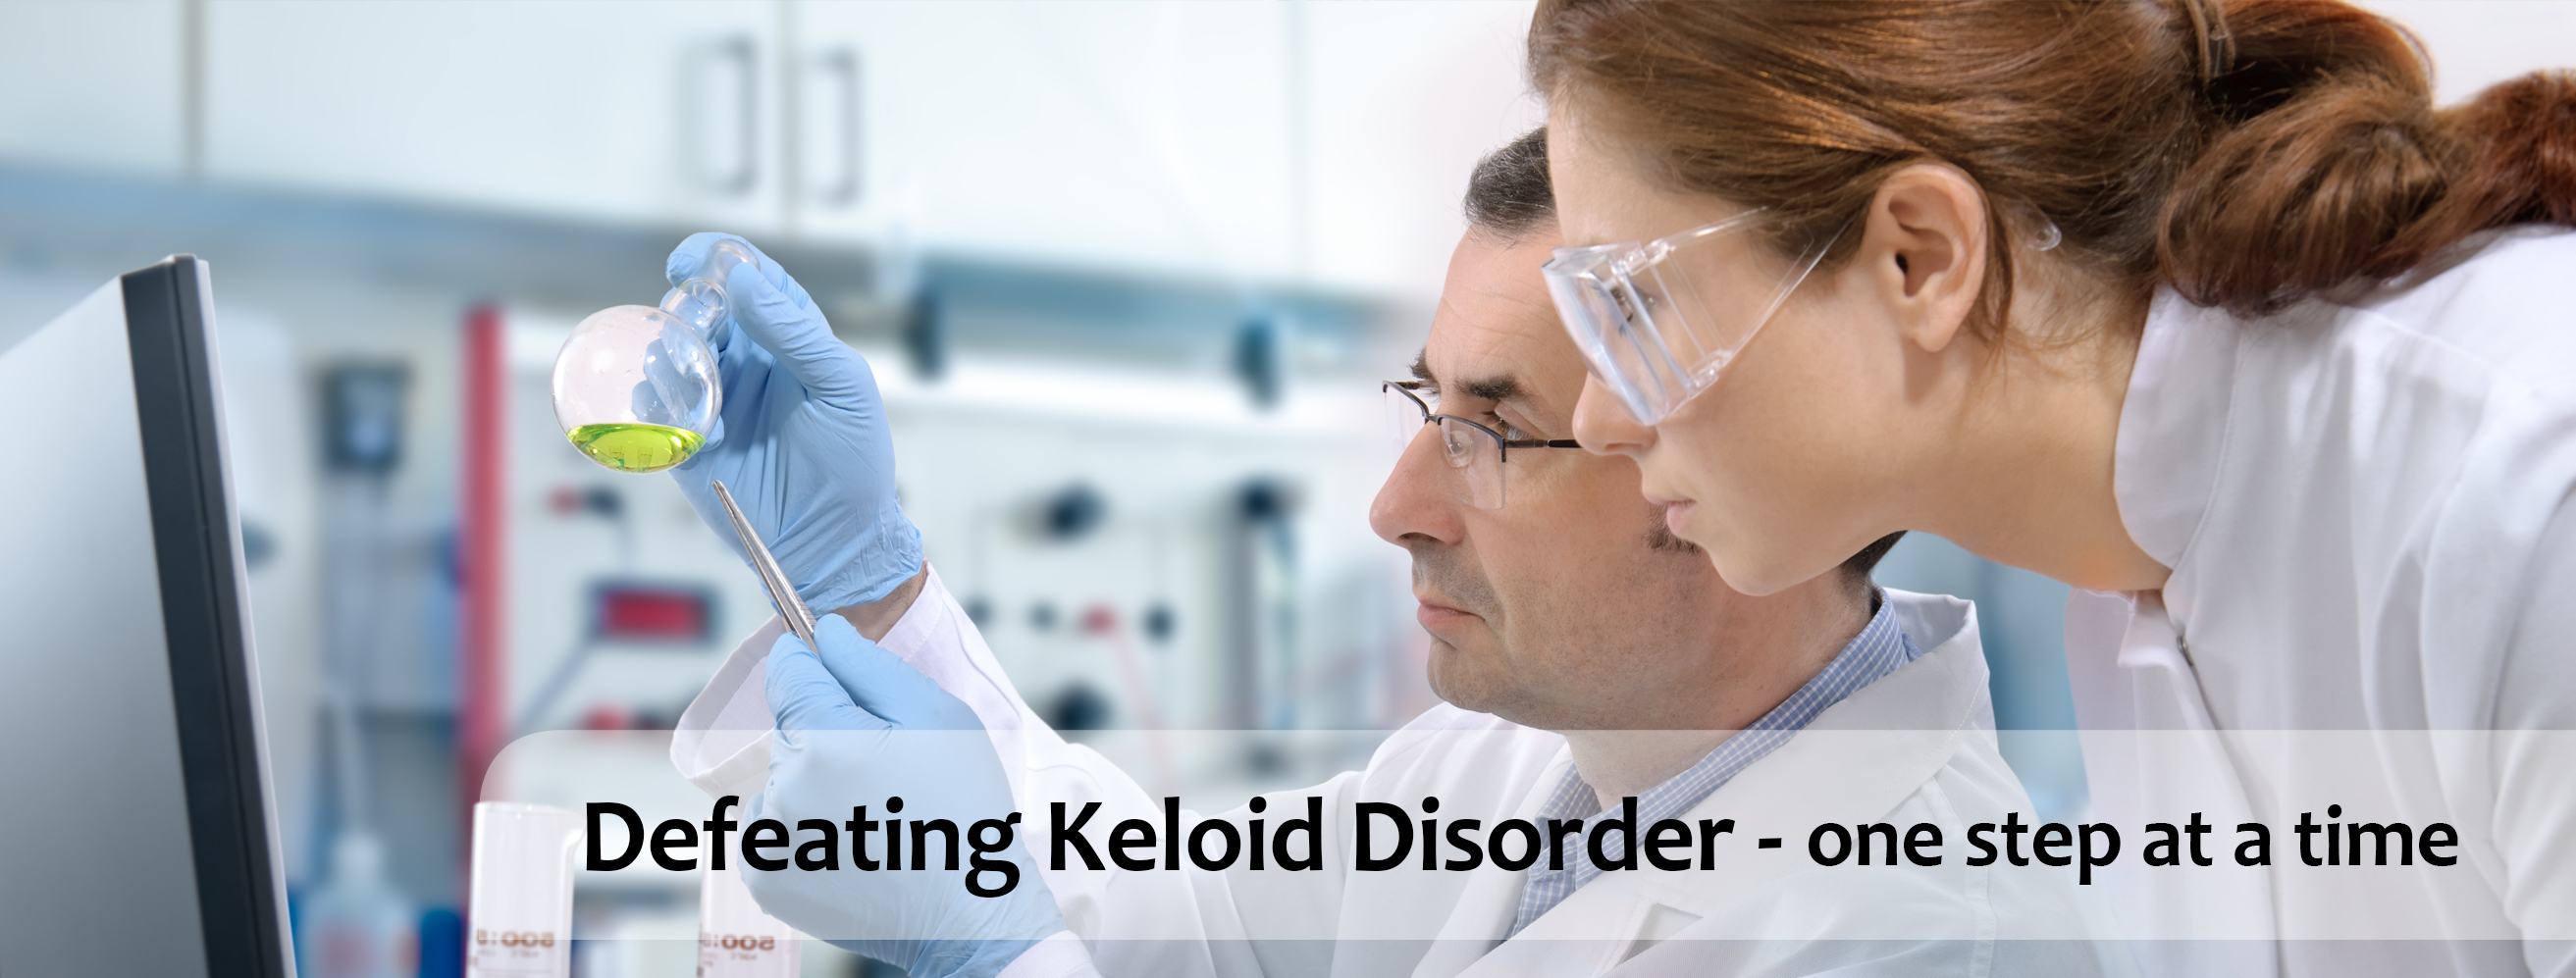 Defeating Keloid Disorder